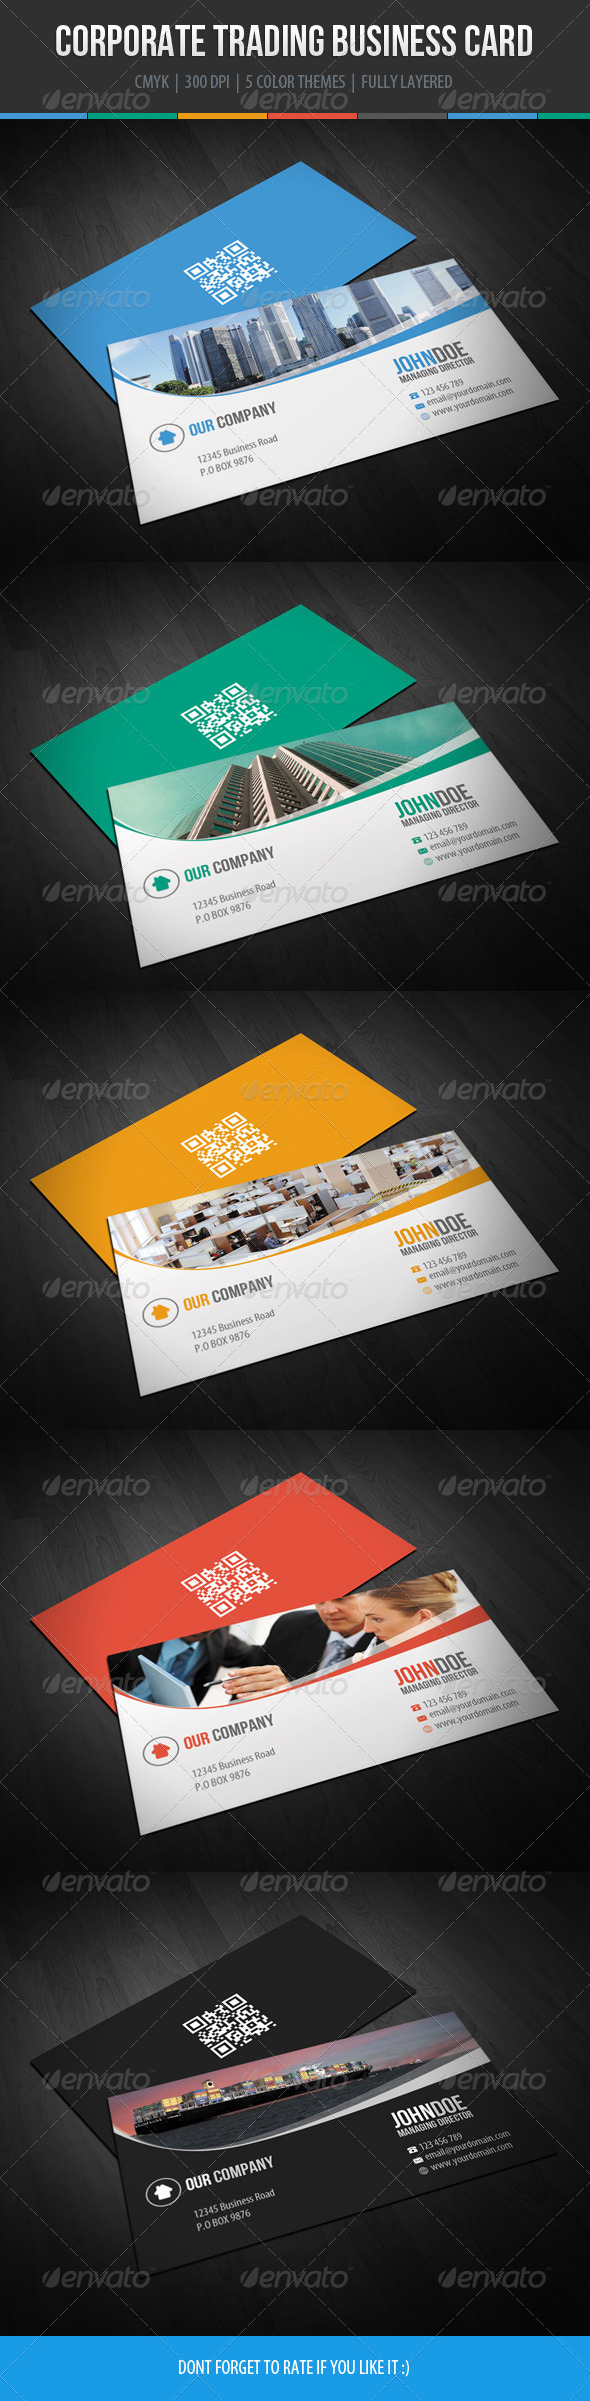 Corporate Trading Business Card Design - Corporate Business Cards